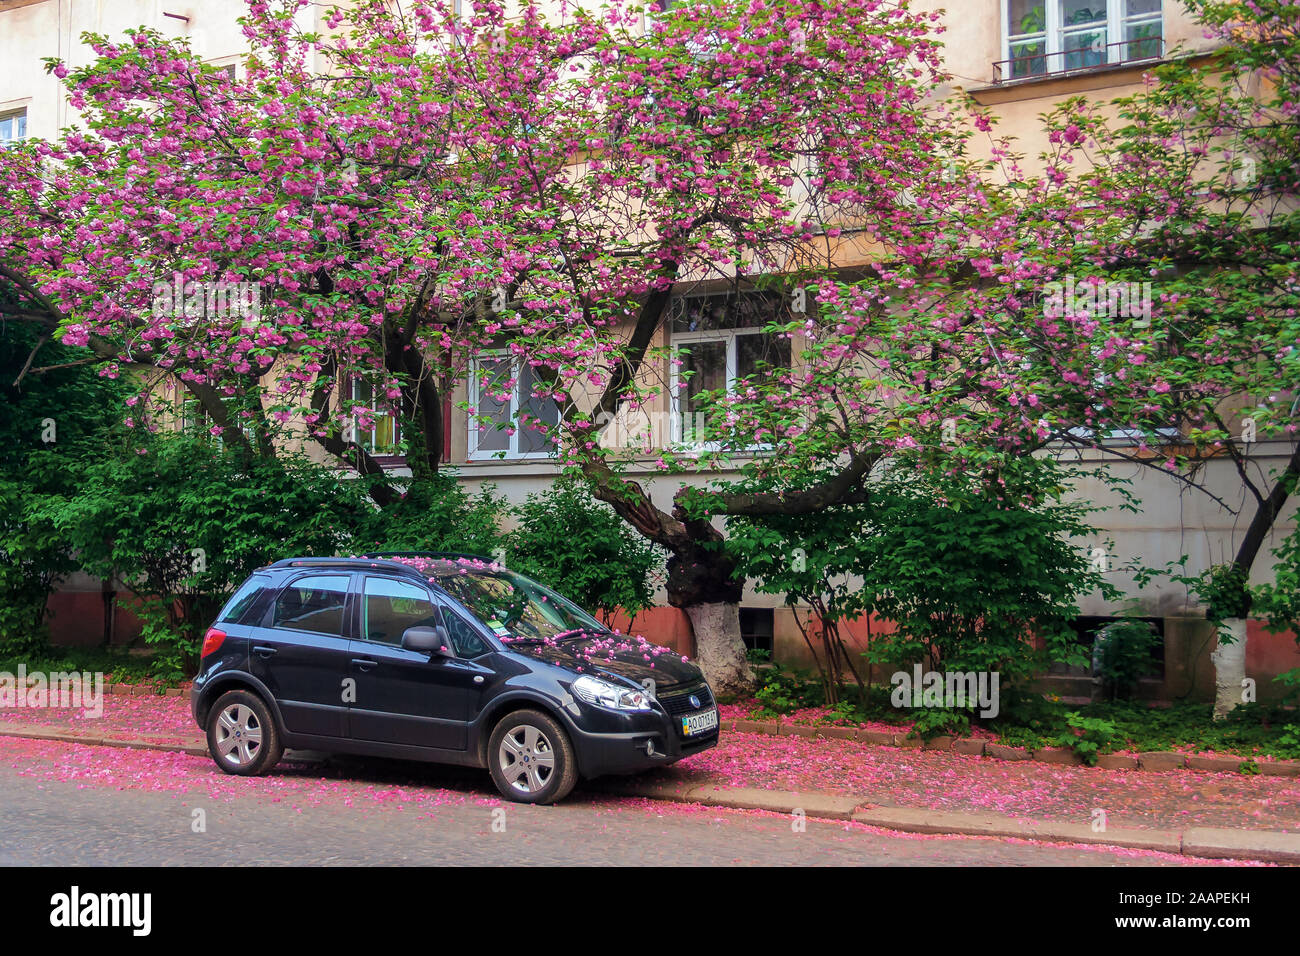 Uzhhorod Ukraine 02 May 2010 Black Compact Suv Car Under The Cherry Tree In Blossom Typical Scenario On The Streets Of Old Town In Springtime F Stock Photo Alamy